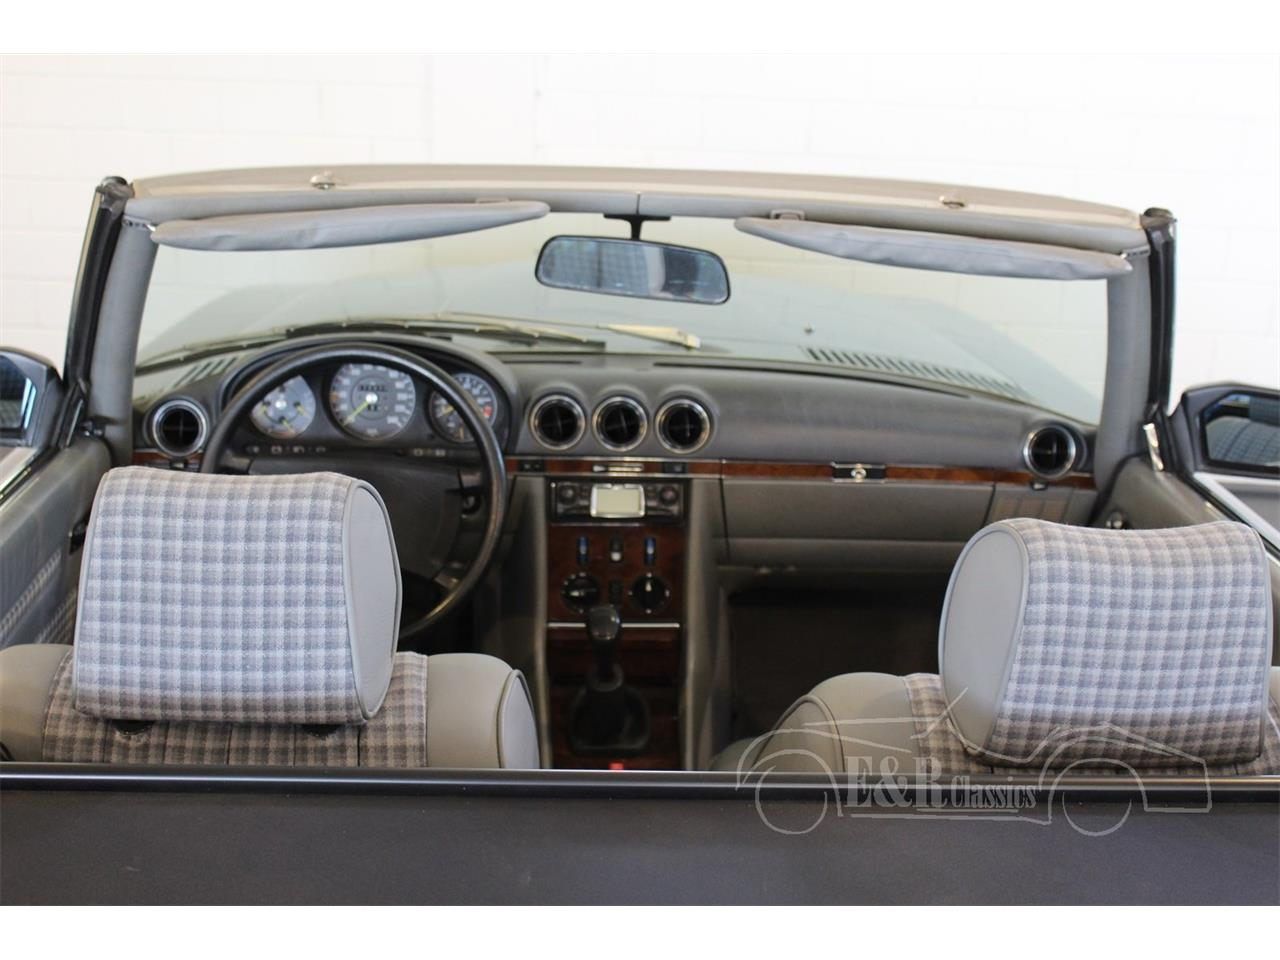 Large Picture of '83 Mercedes-Benz 280SL located in noord brabant - $34,150.00 Offered by E & R Classics - QEBS